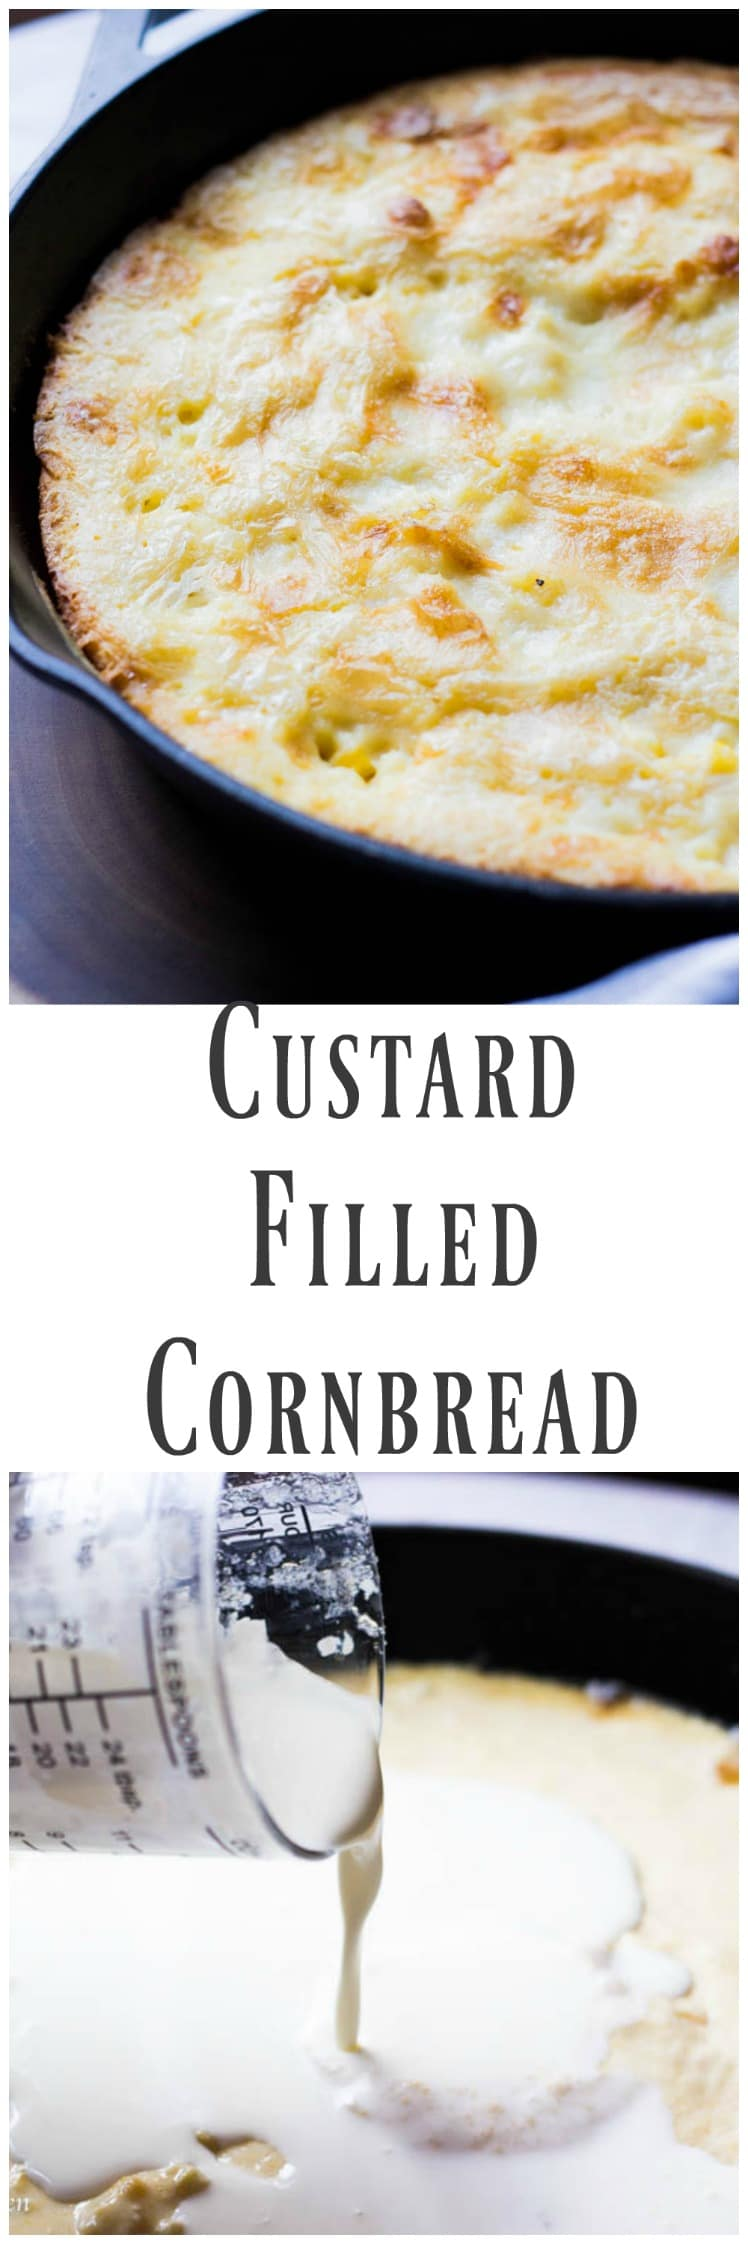 This Custard Filled Cornbread is the king of all cornbread. It is deliciously sweet and incredibly tender and has a creamy custard center that will blow every other corn bread out of the water.